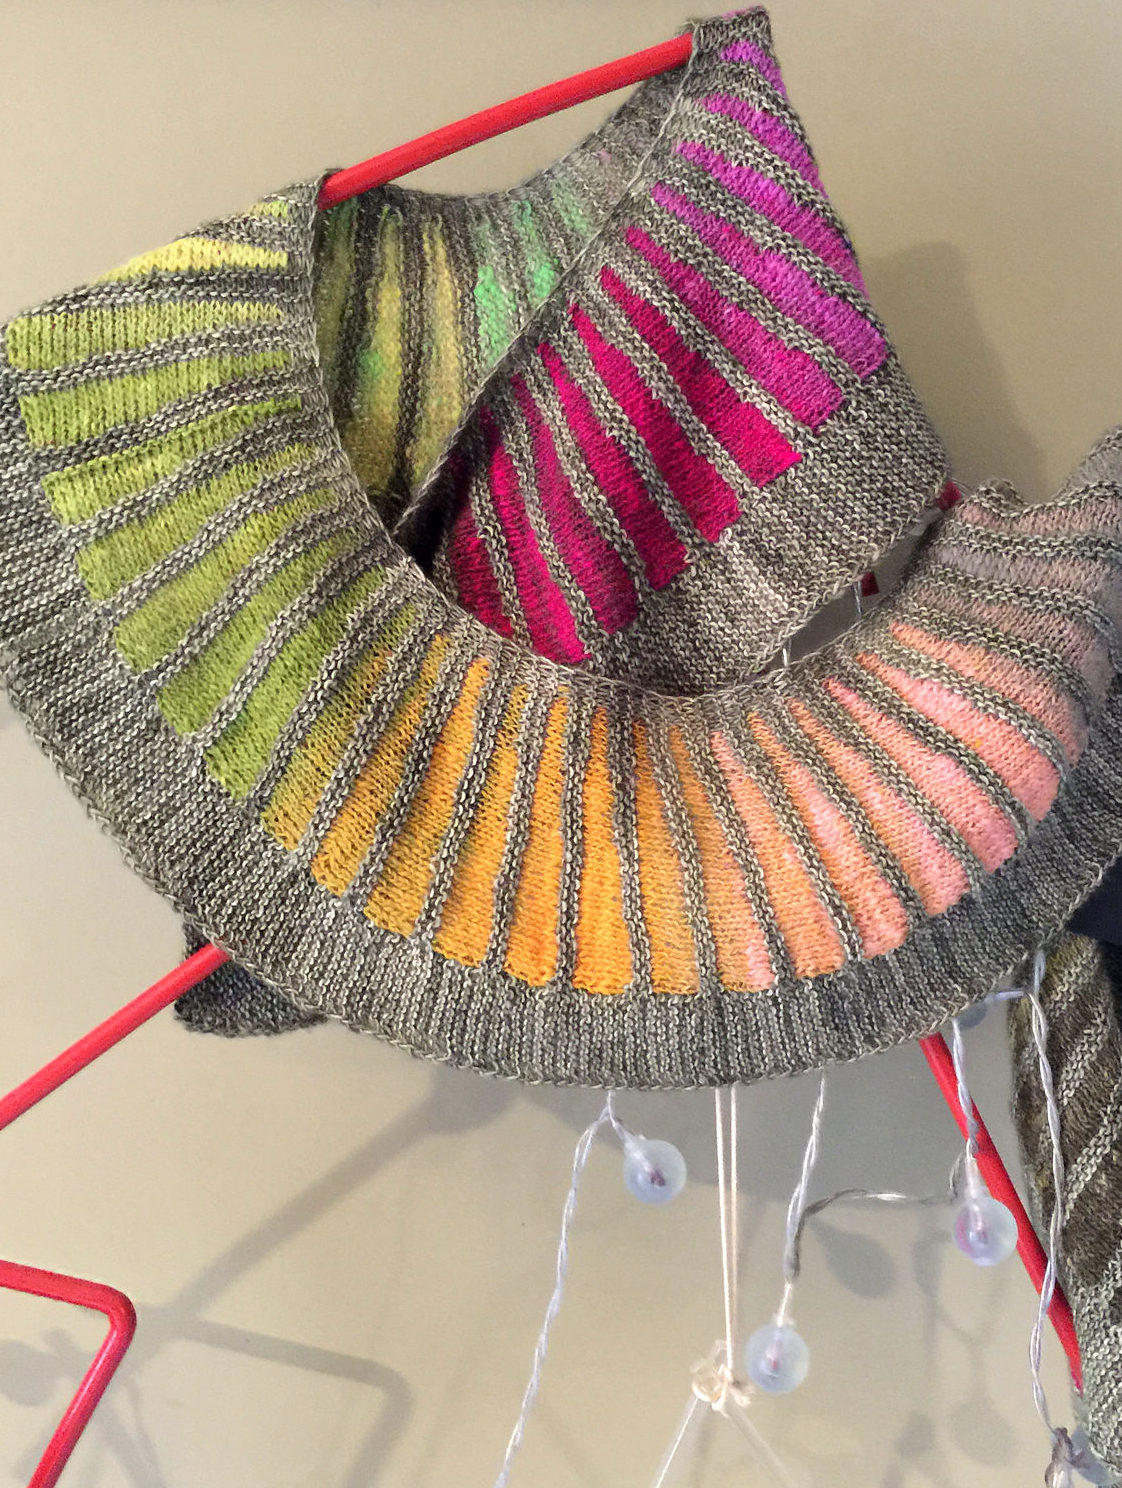 Knitting Pattern for Spectra Scarf by Stephen West